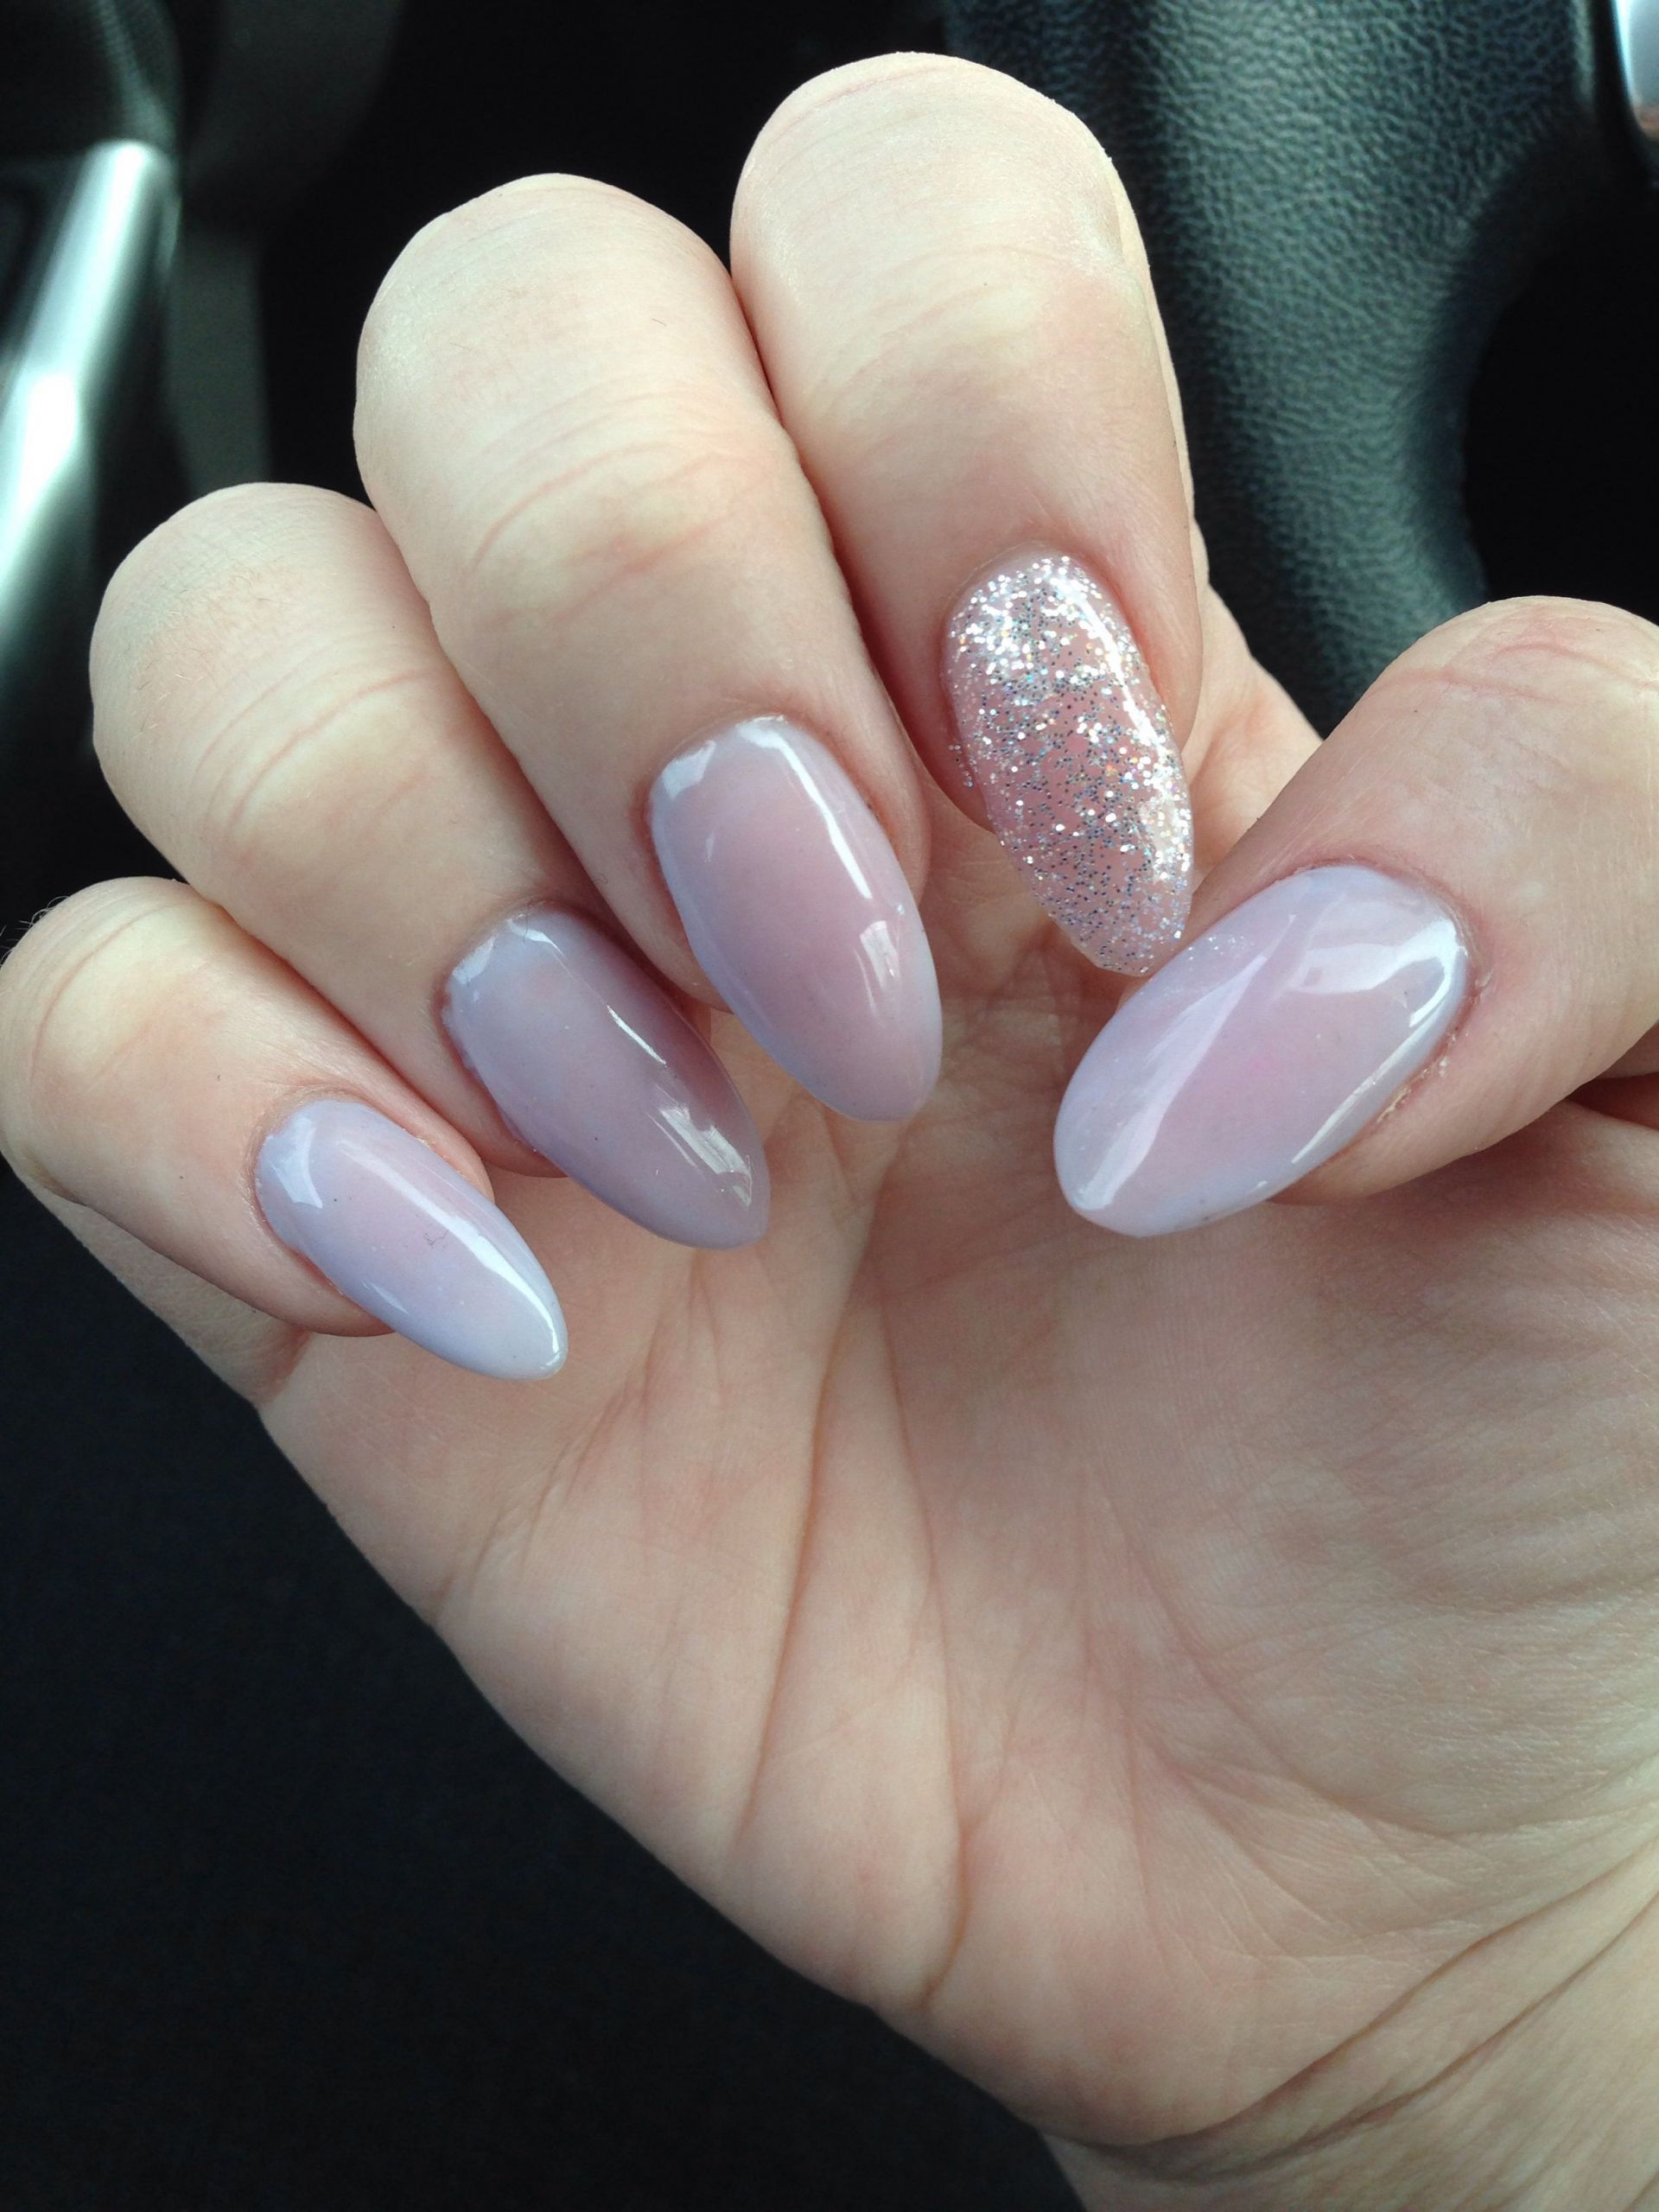 Almond Glitter Nails  Pale Lavender almond gel nails with glitter accent nail